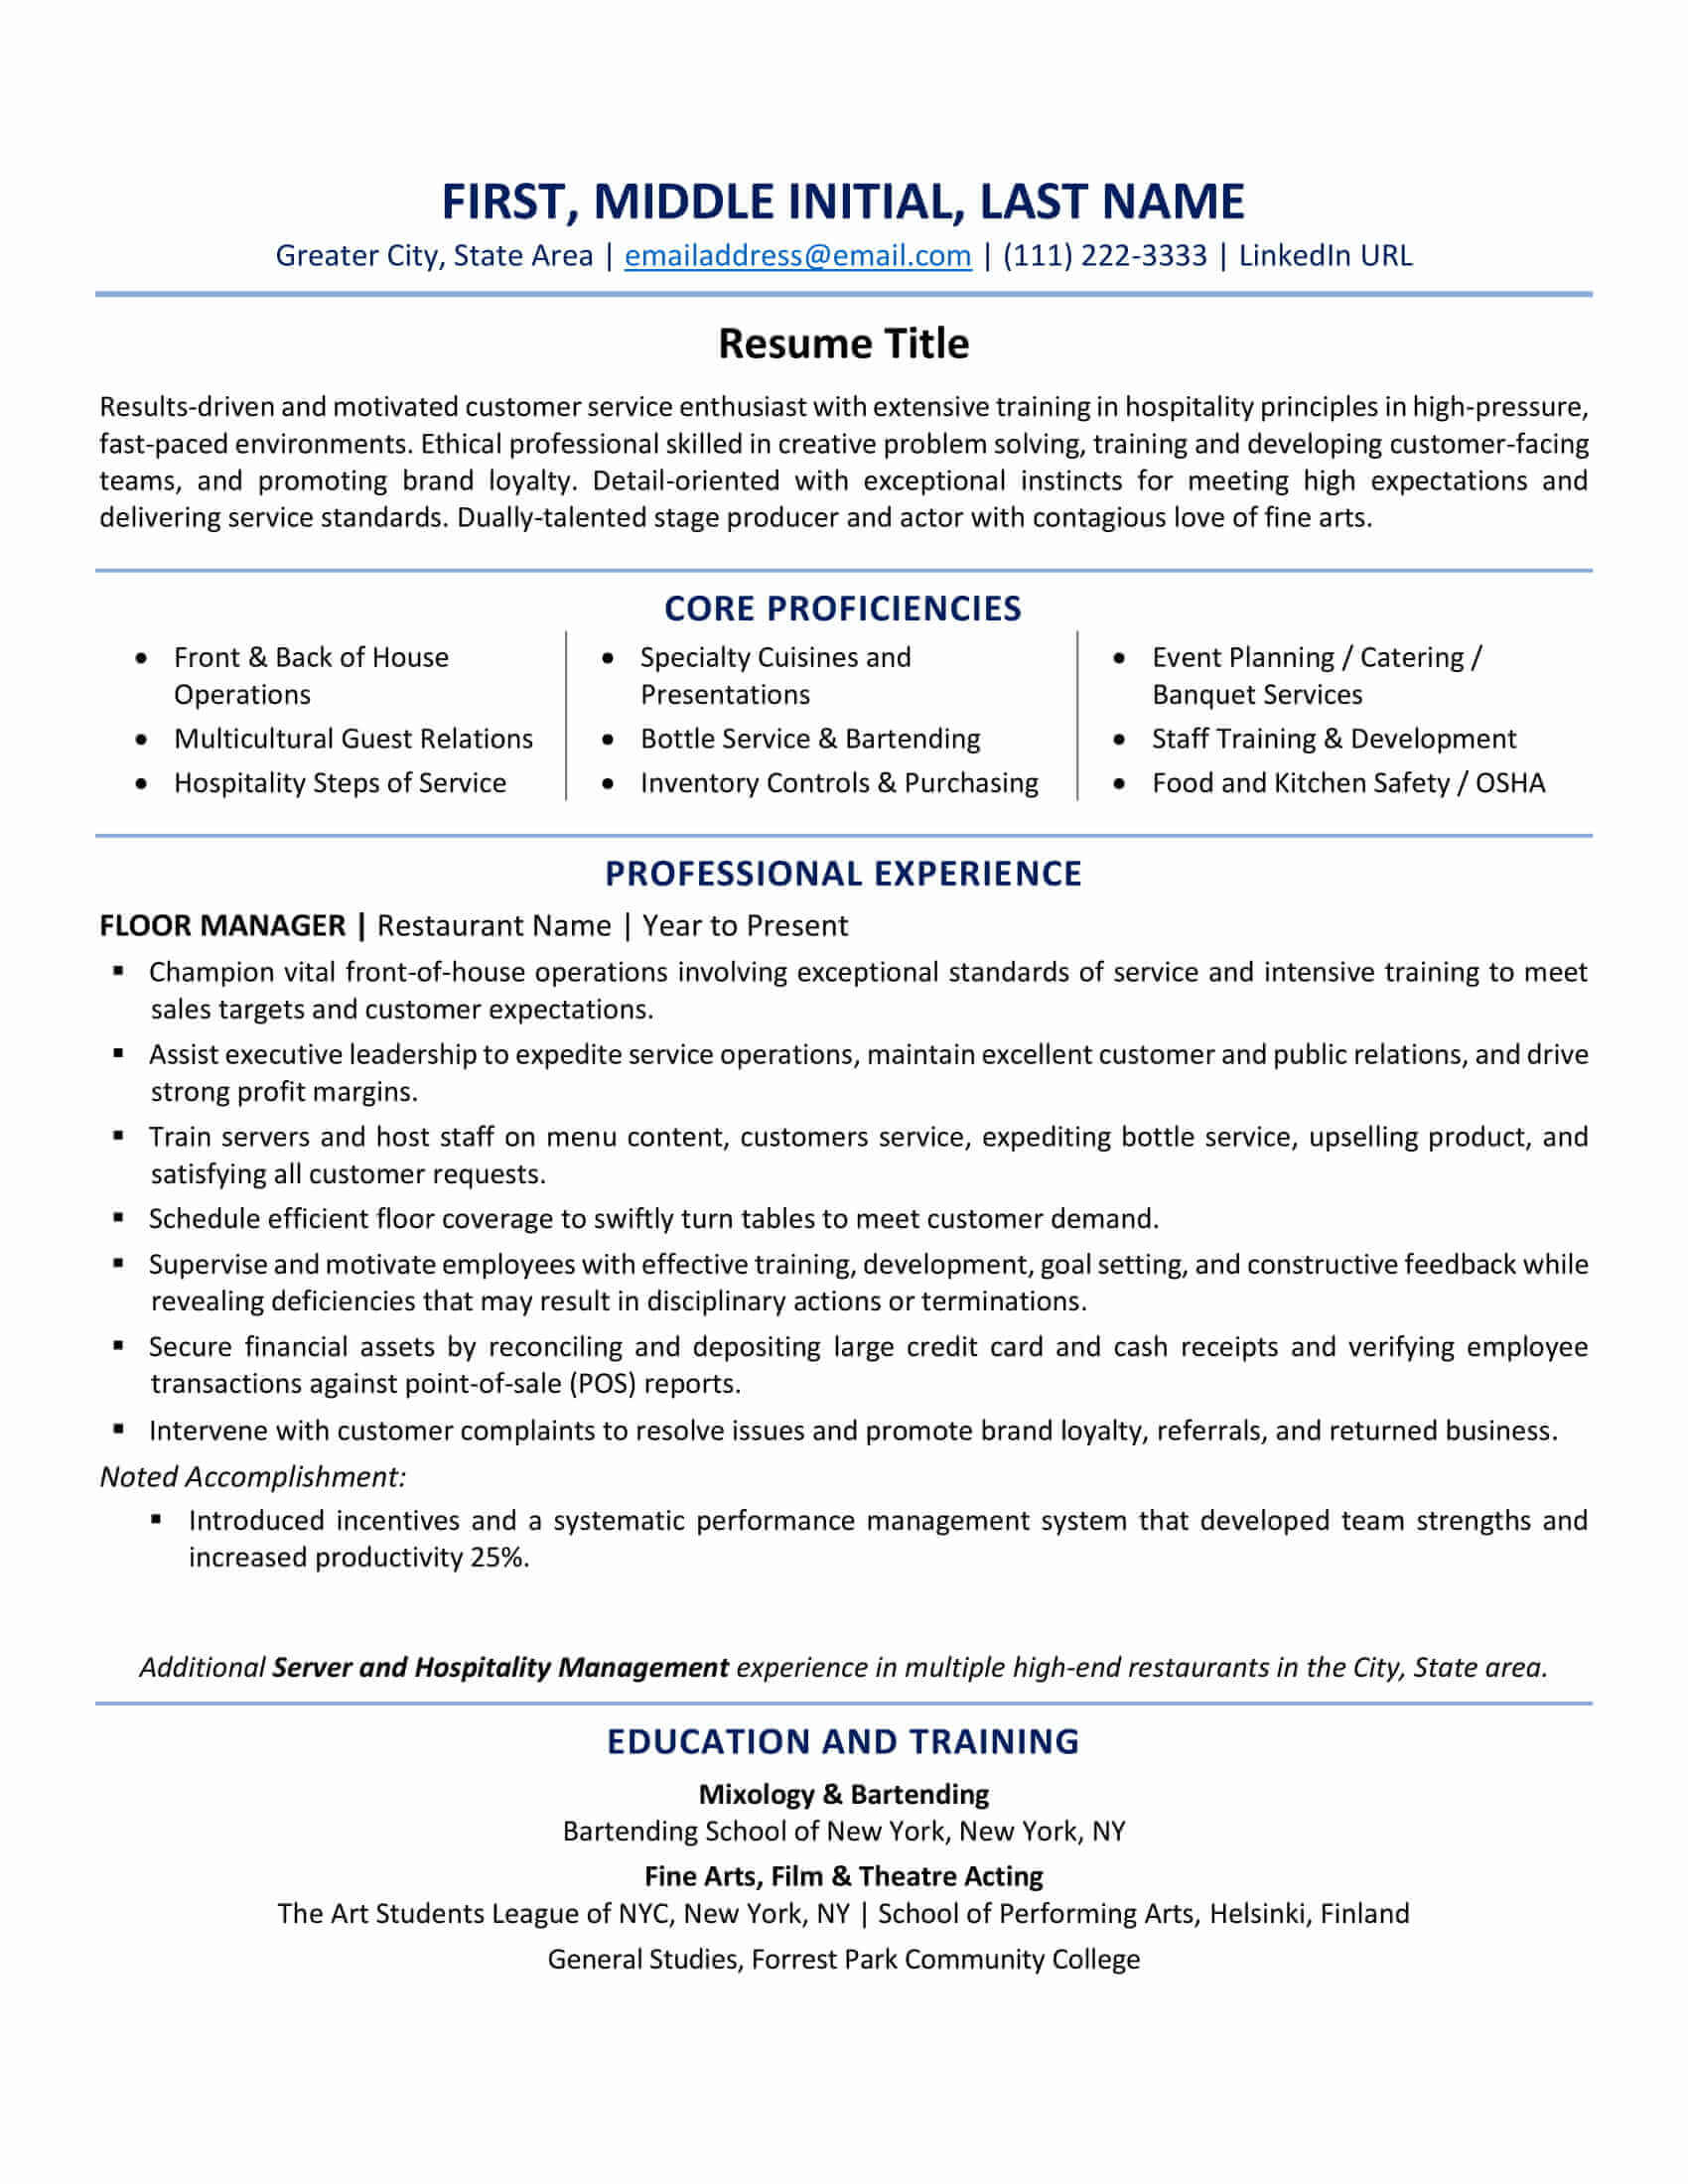 ats resume test free checker and formatting examples software for when moving to the us Resume Ats Software For Resume